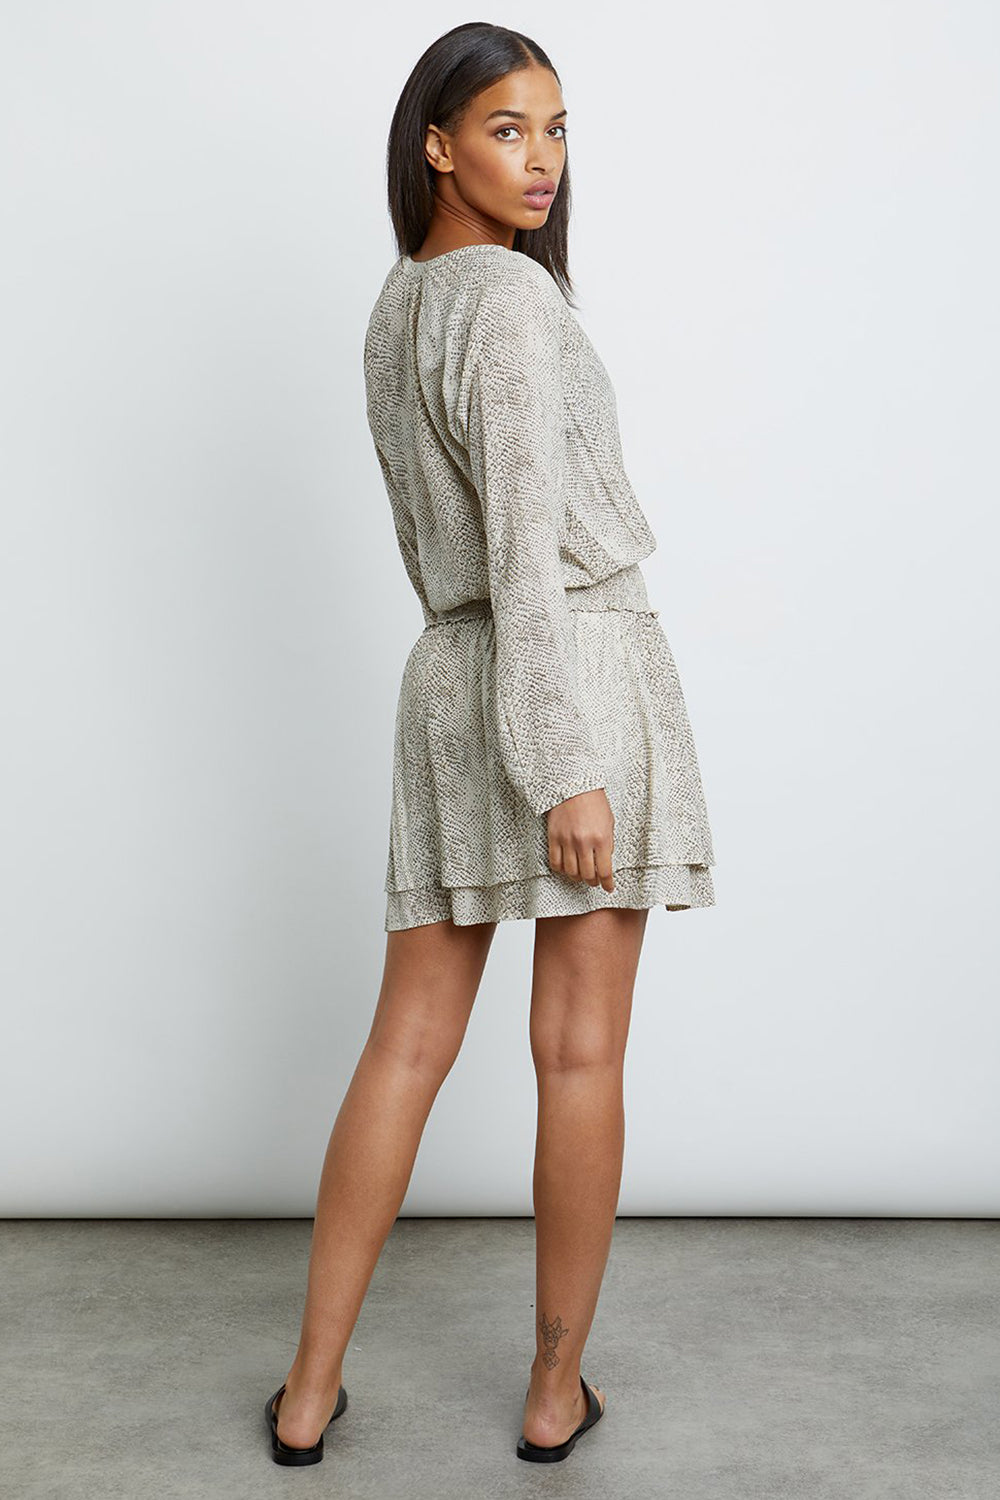 RAILS - JASMINE DRESS CREAM SNAKESKIN